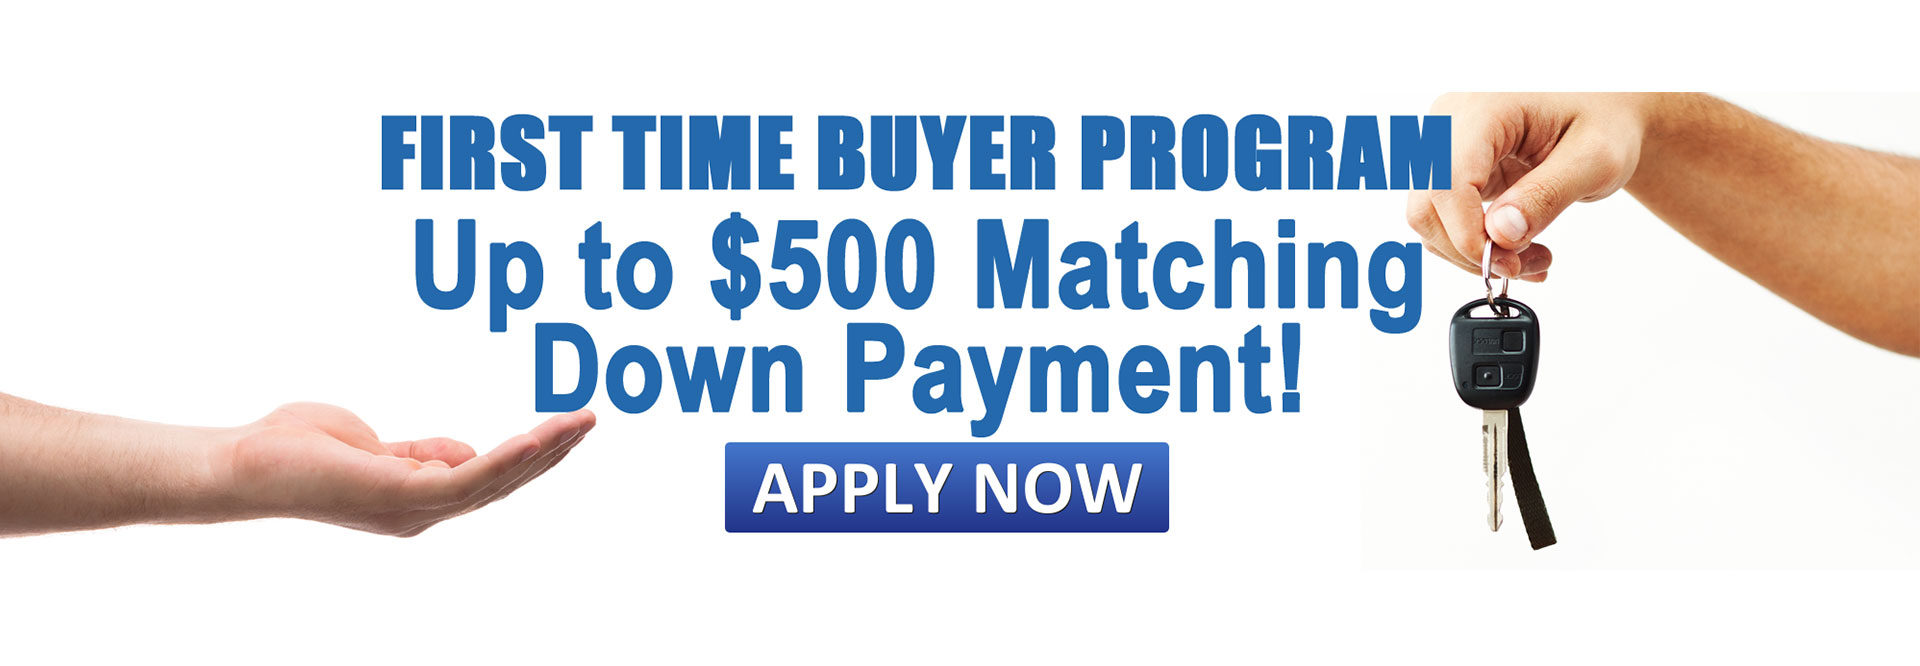 First Time Buyer Program Lake Elsinore Ford